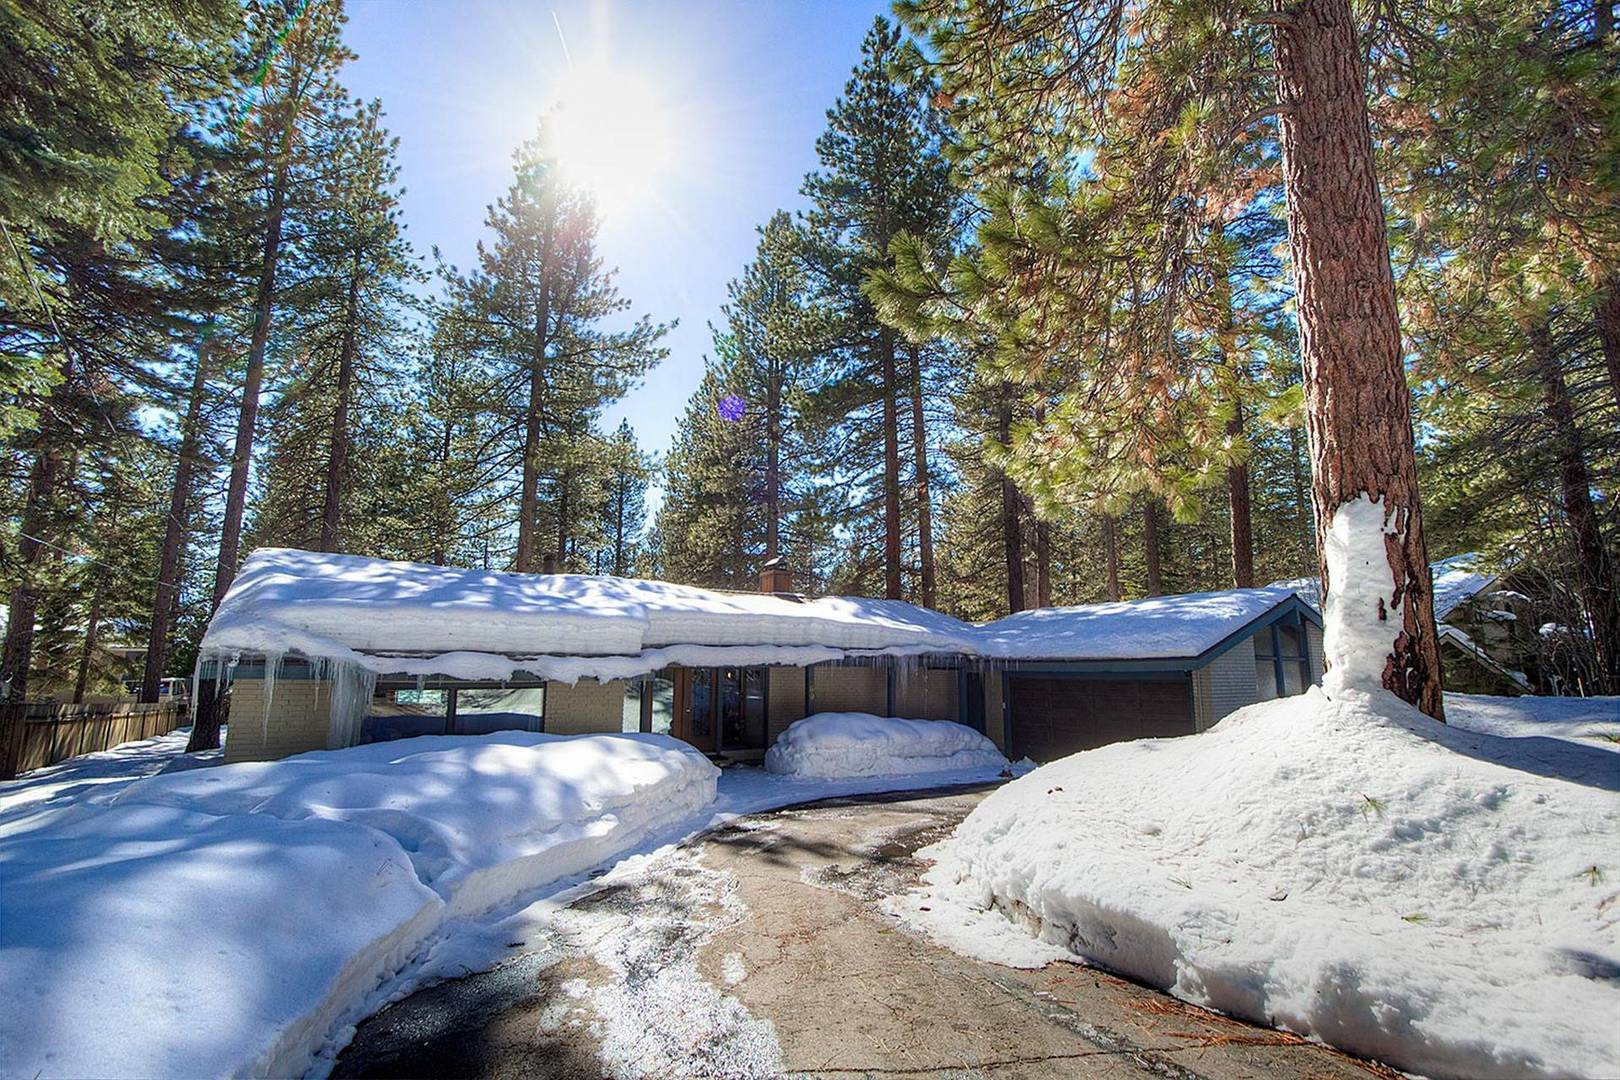 ivh0669 Incline Village Vacation Rental